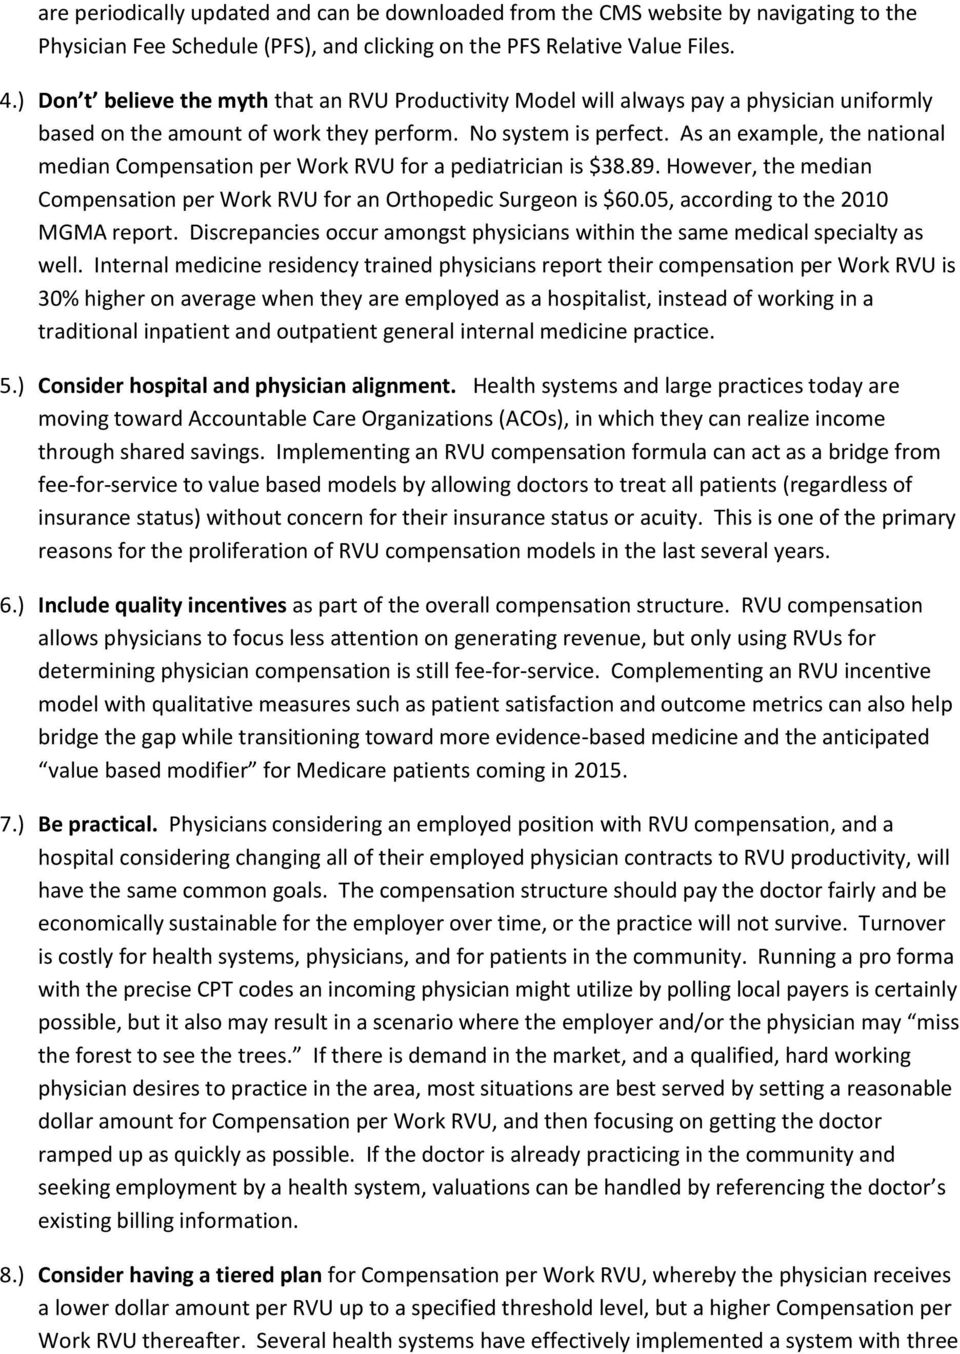 RVU BASED PHYSICIAN COMPENSATION AND PRODUCTIVITY - PDF